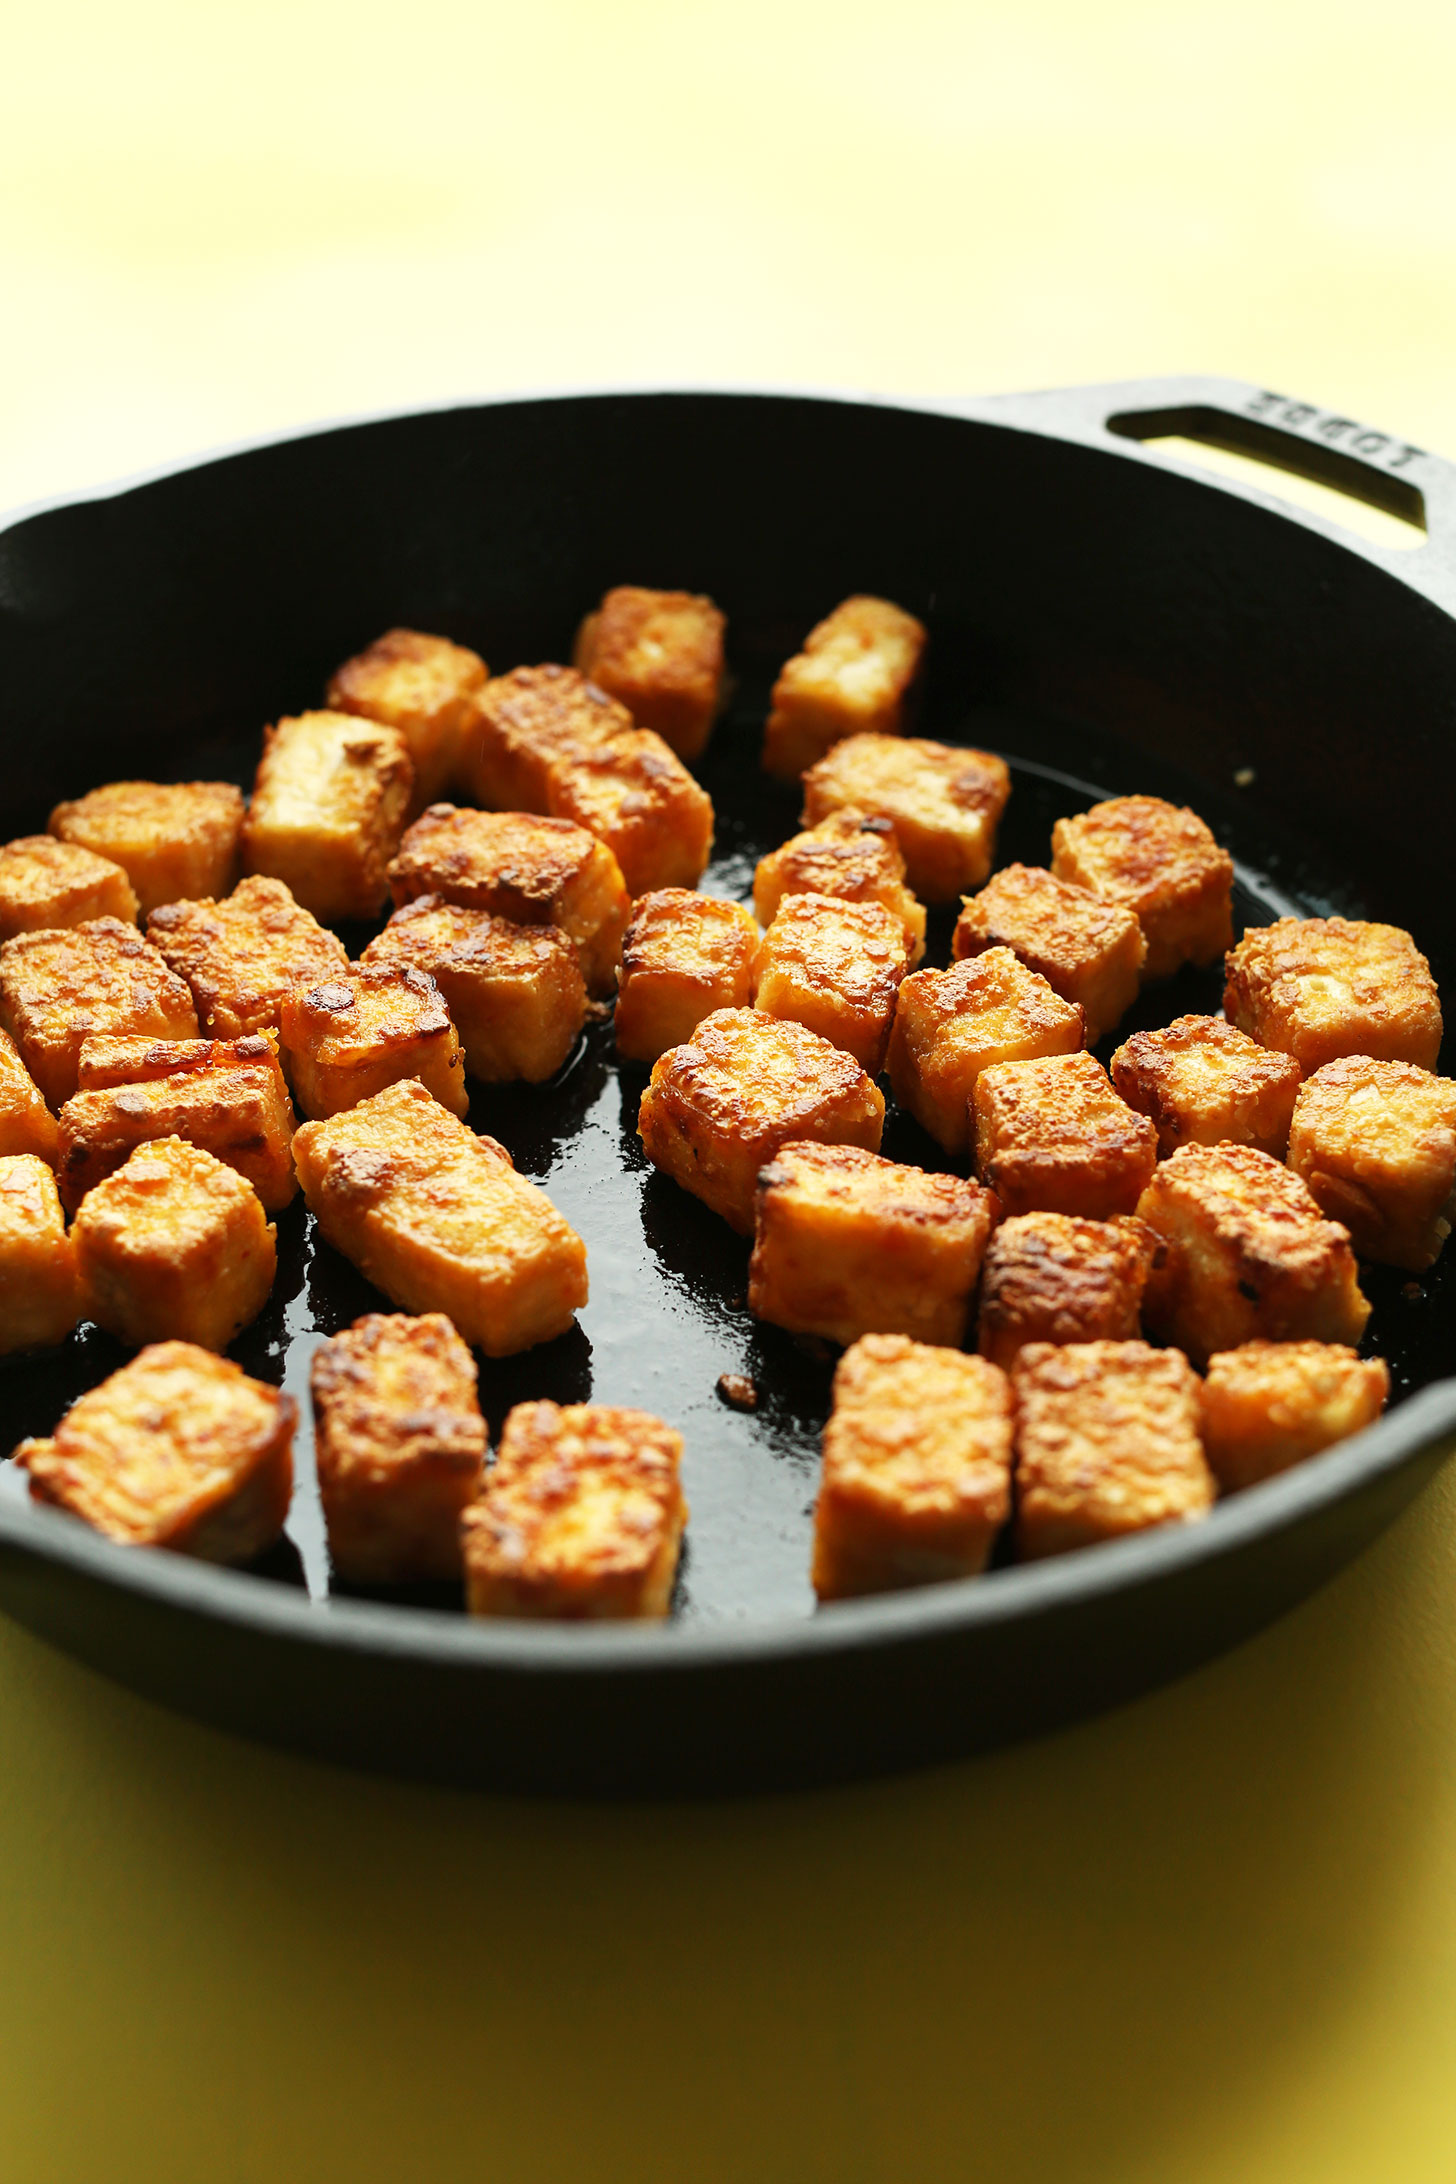 Using a cast-iron skillet to make crispy tofu